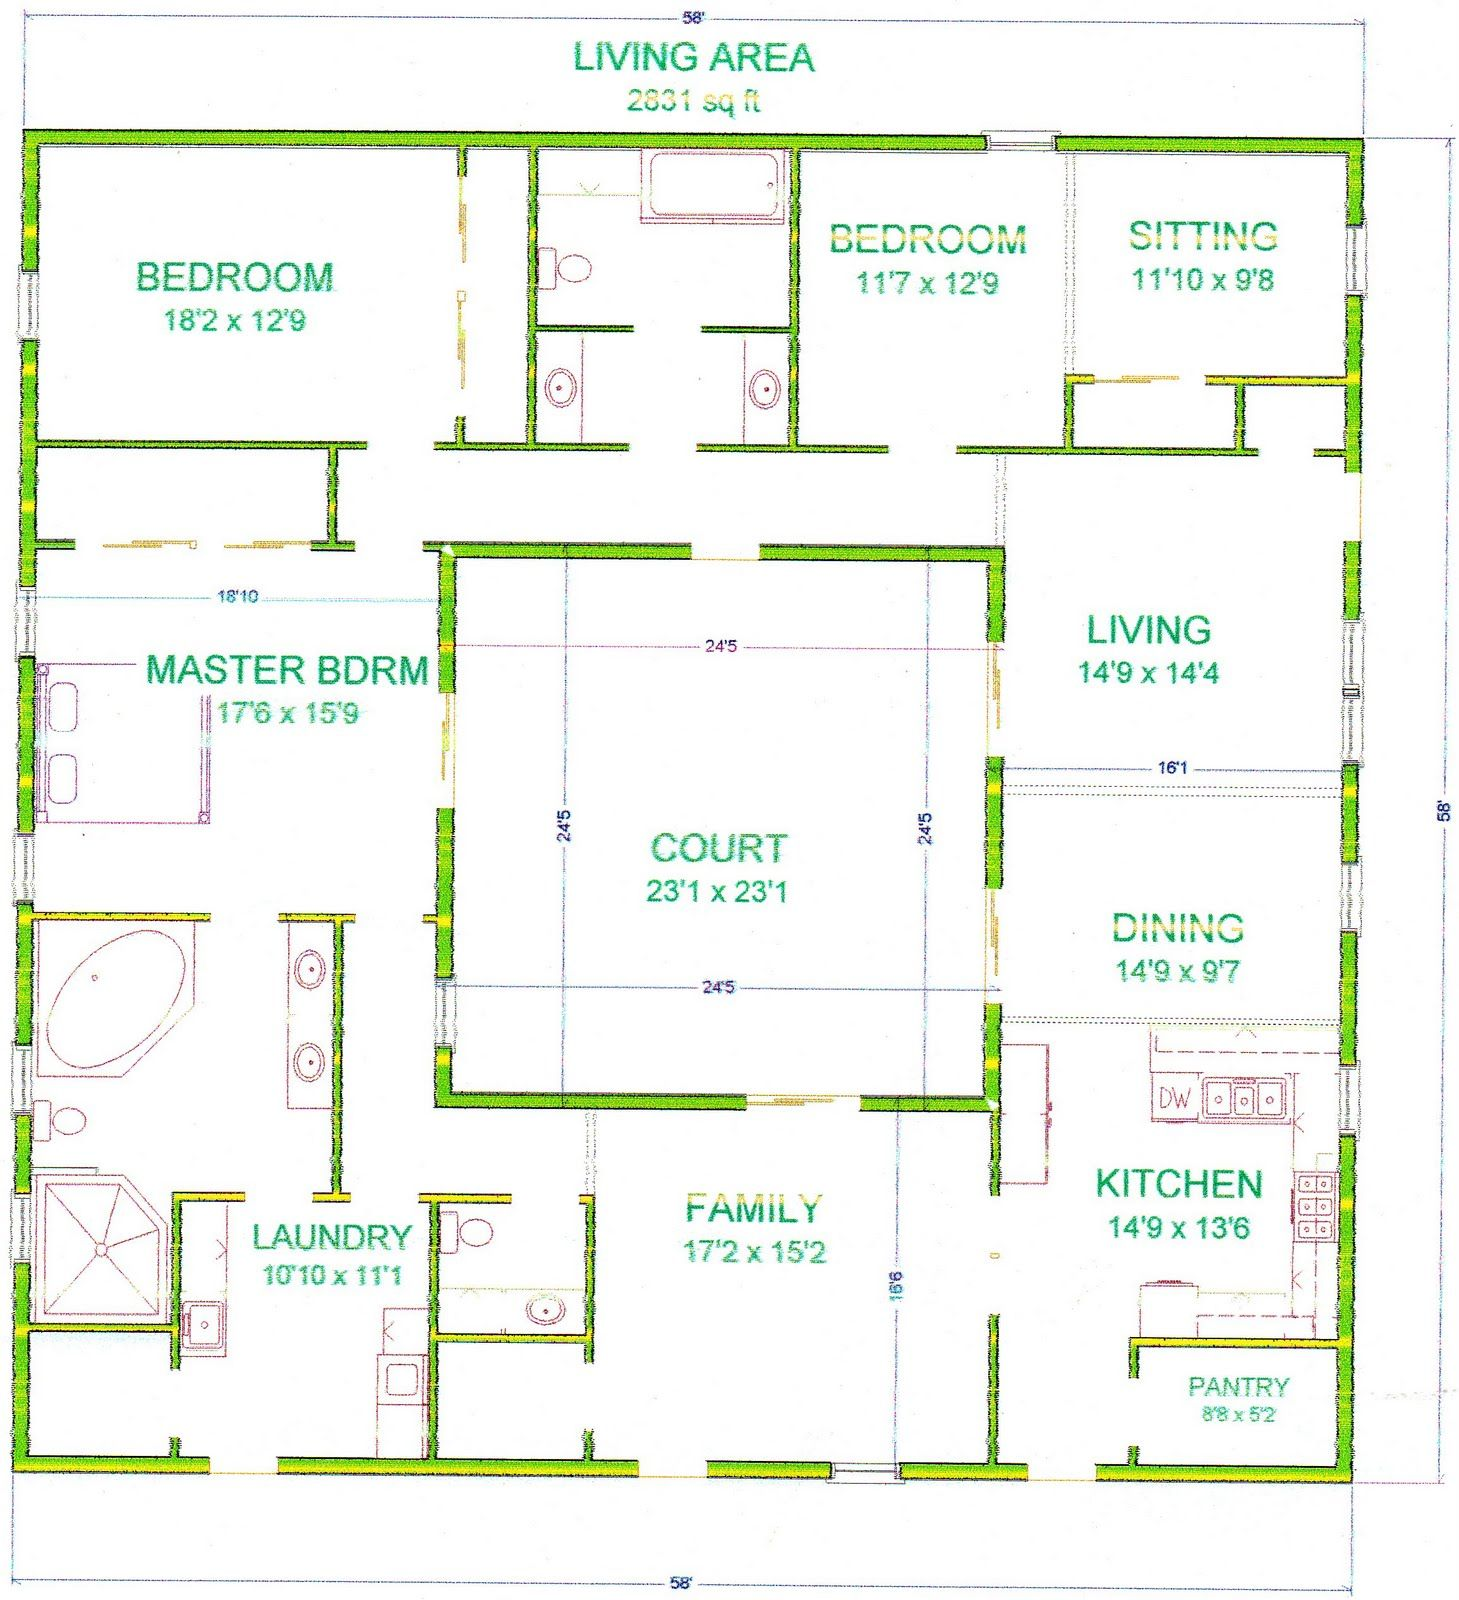 Center courtyard house plans with 2831 square feet this Indoor courtyard house plans